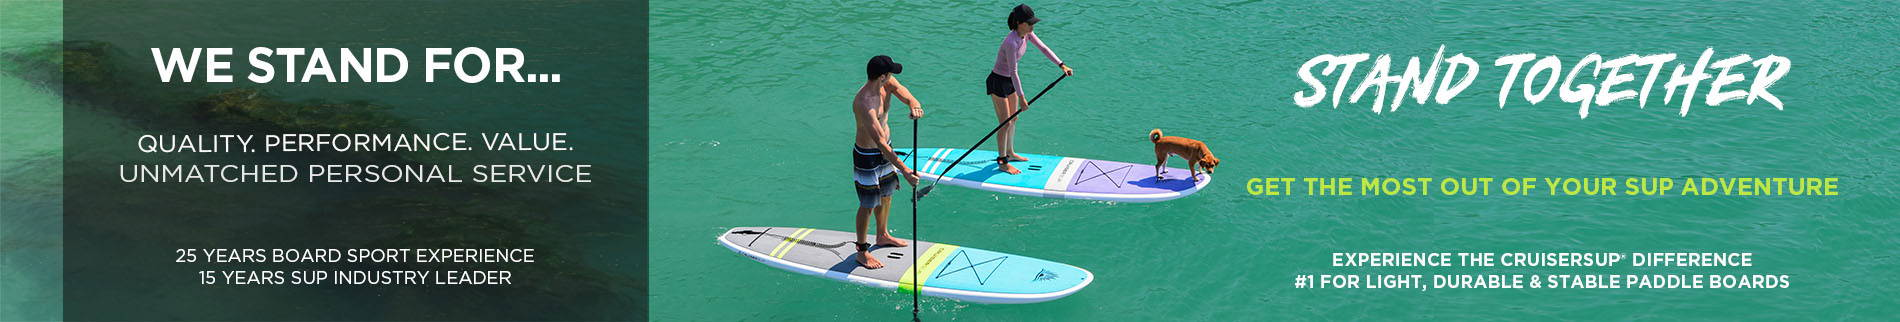 A couple stand up paddle boarding with a dog